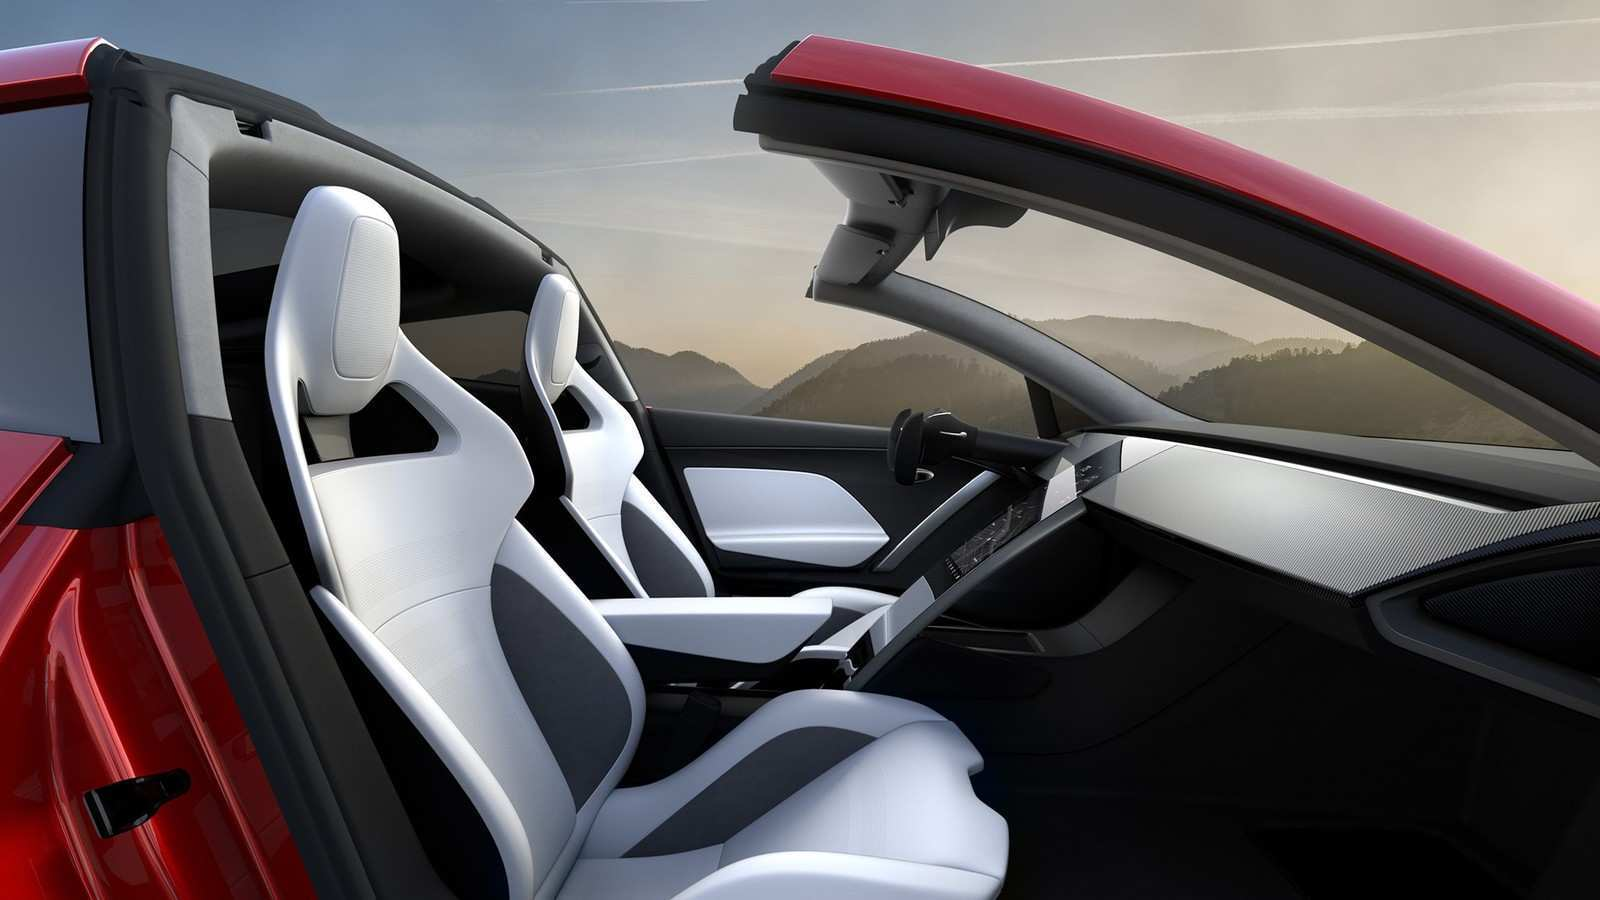 23 Gallery of 2019 Tesla Roadster Interior Review with 2019 Tesla Roadster Interior